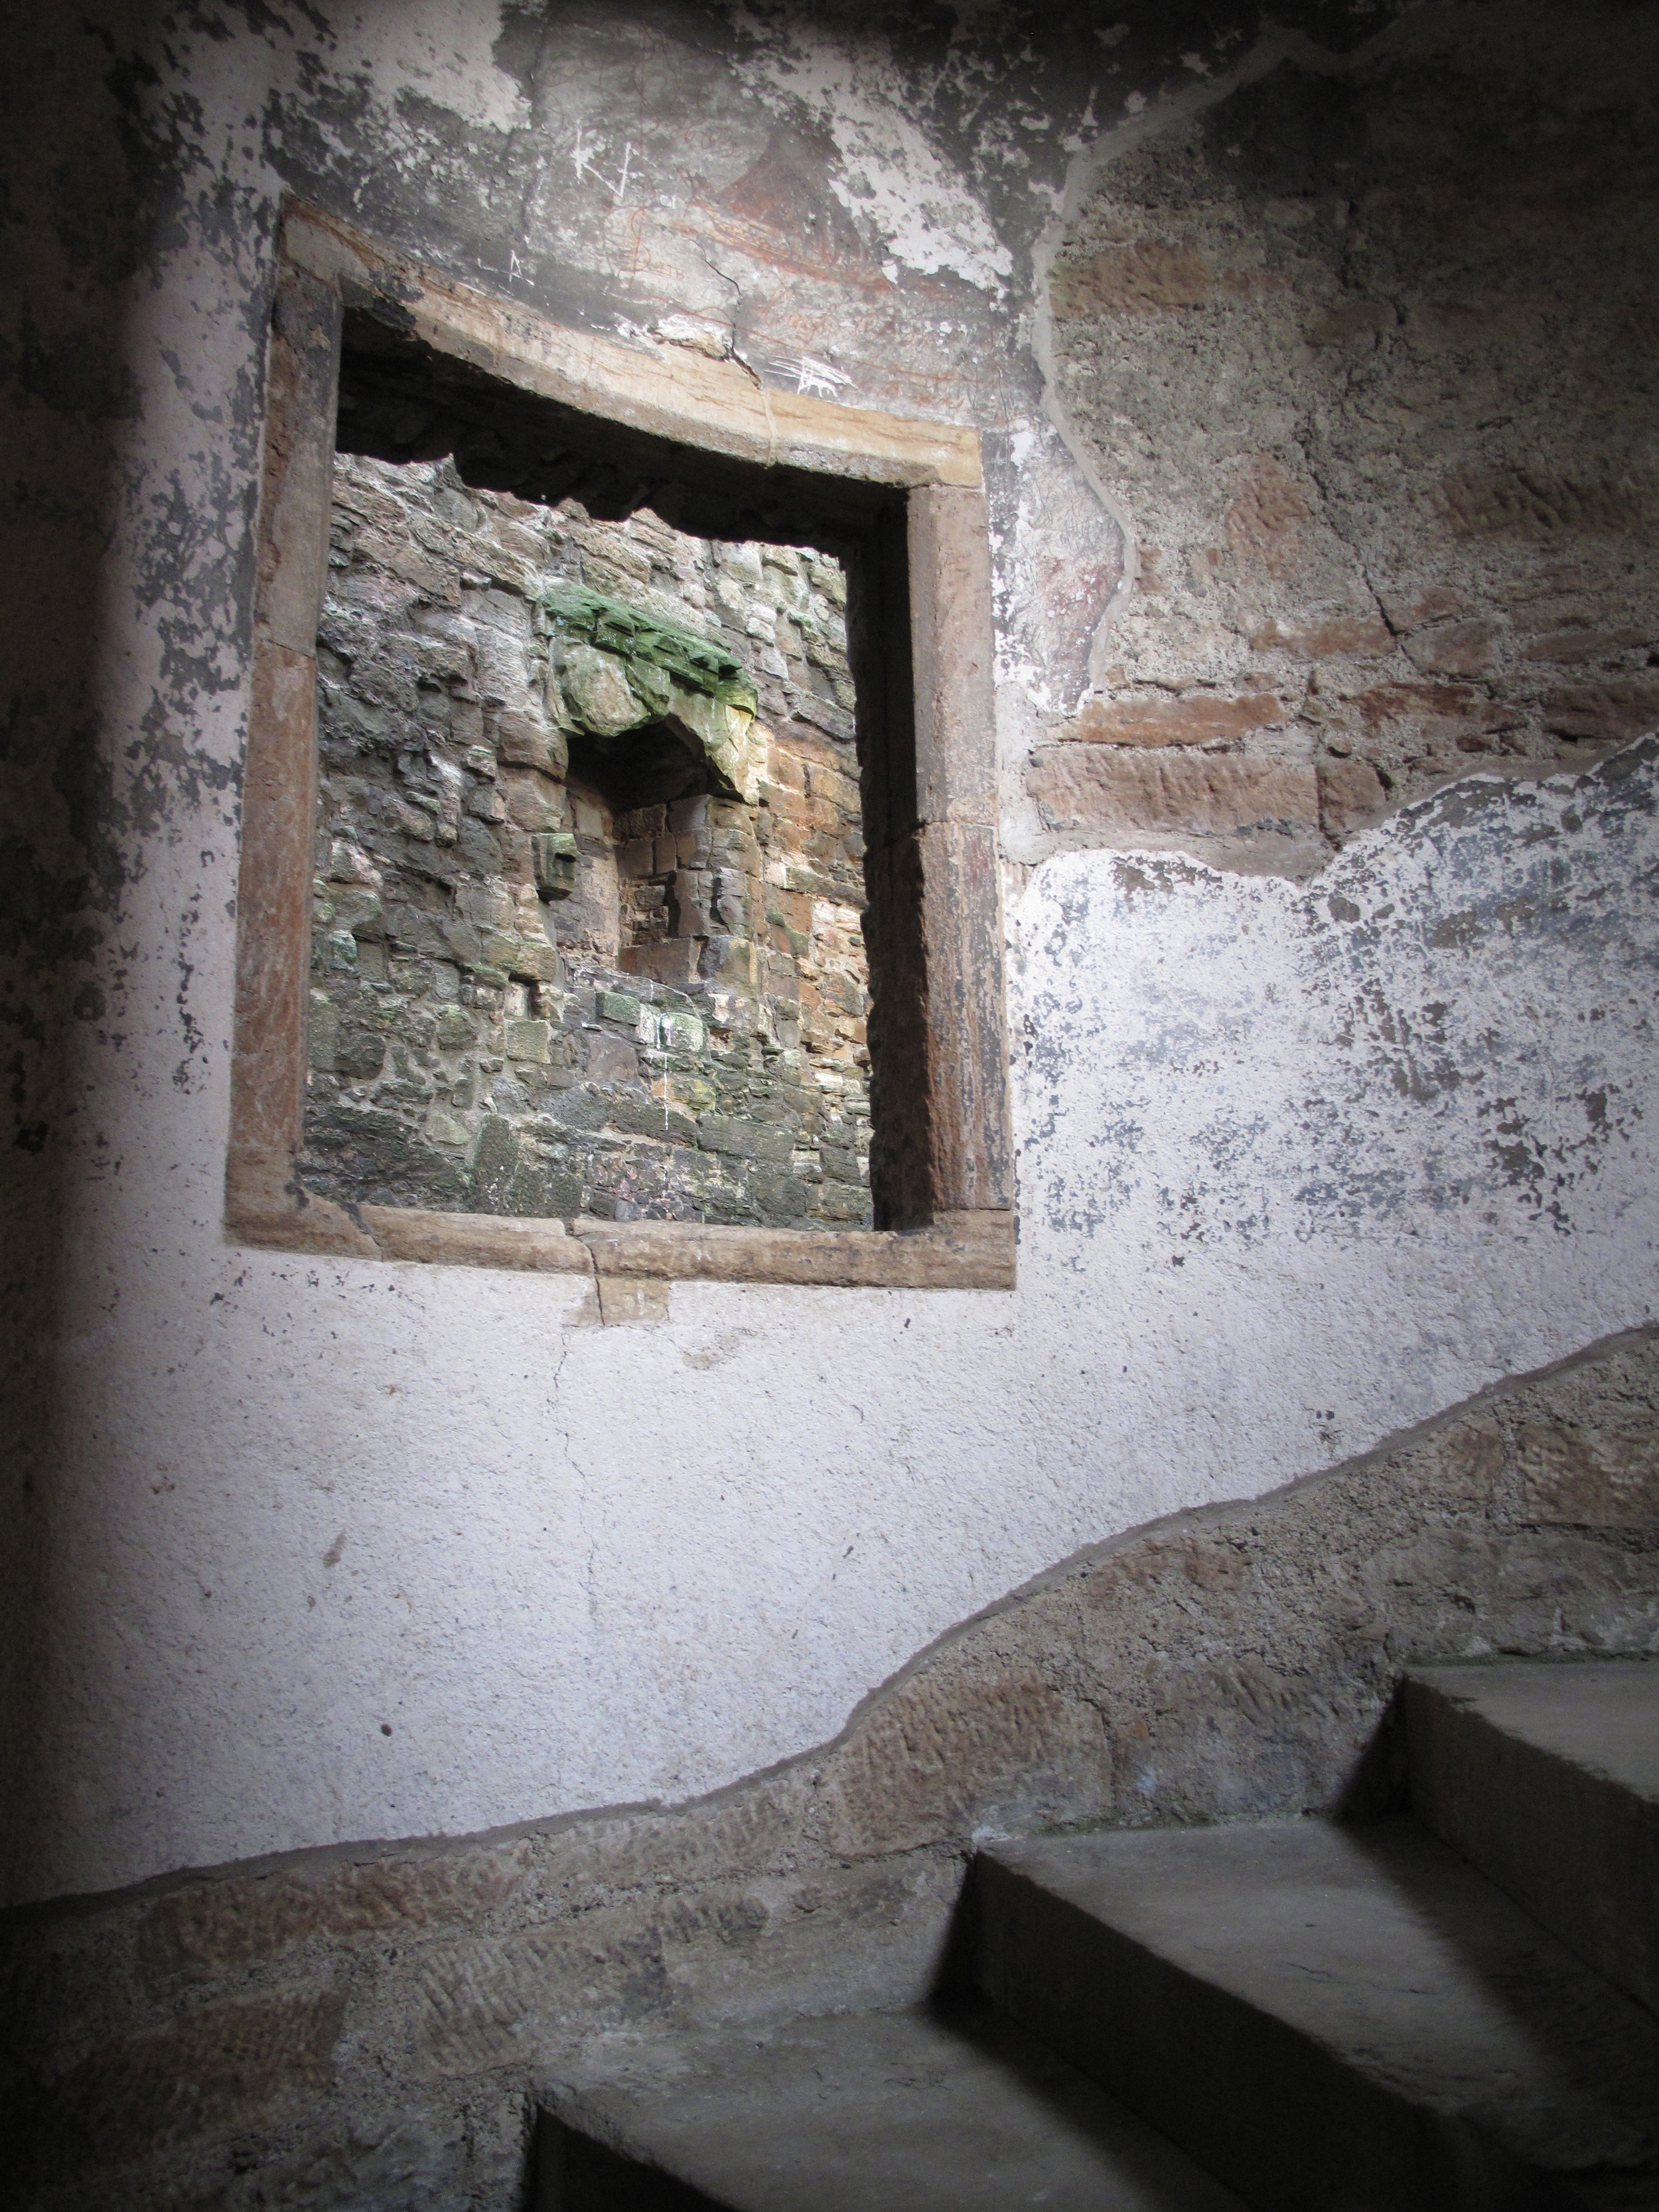 Spiral staircase inside Linlithgow tower.